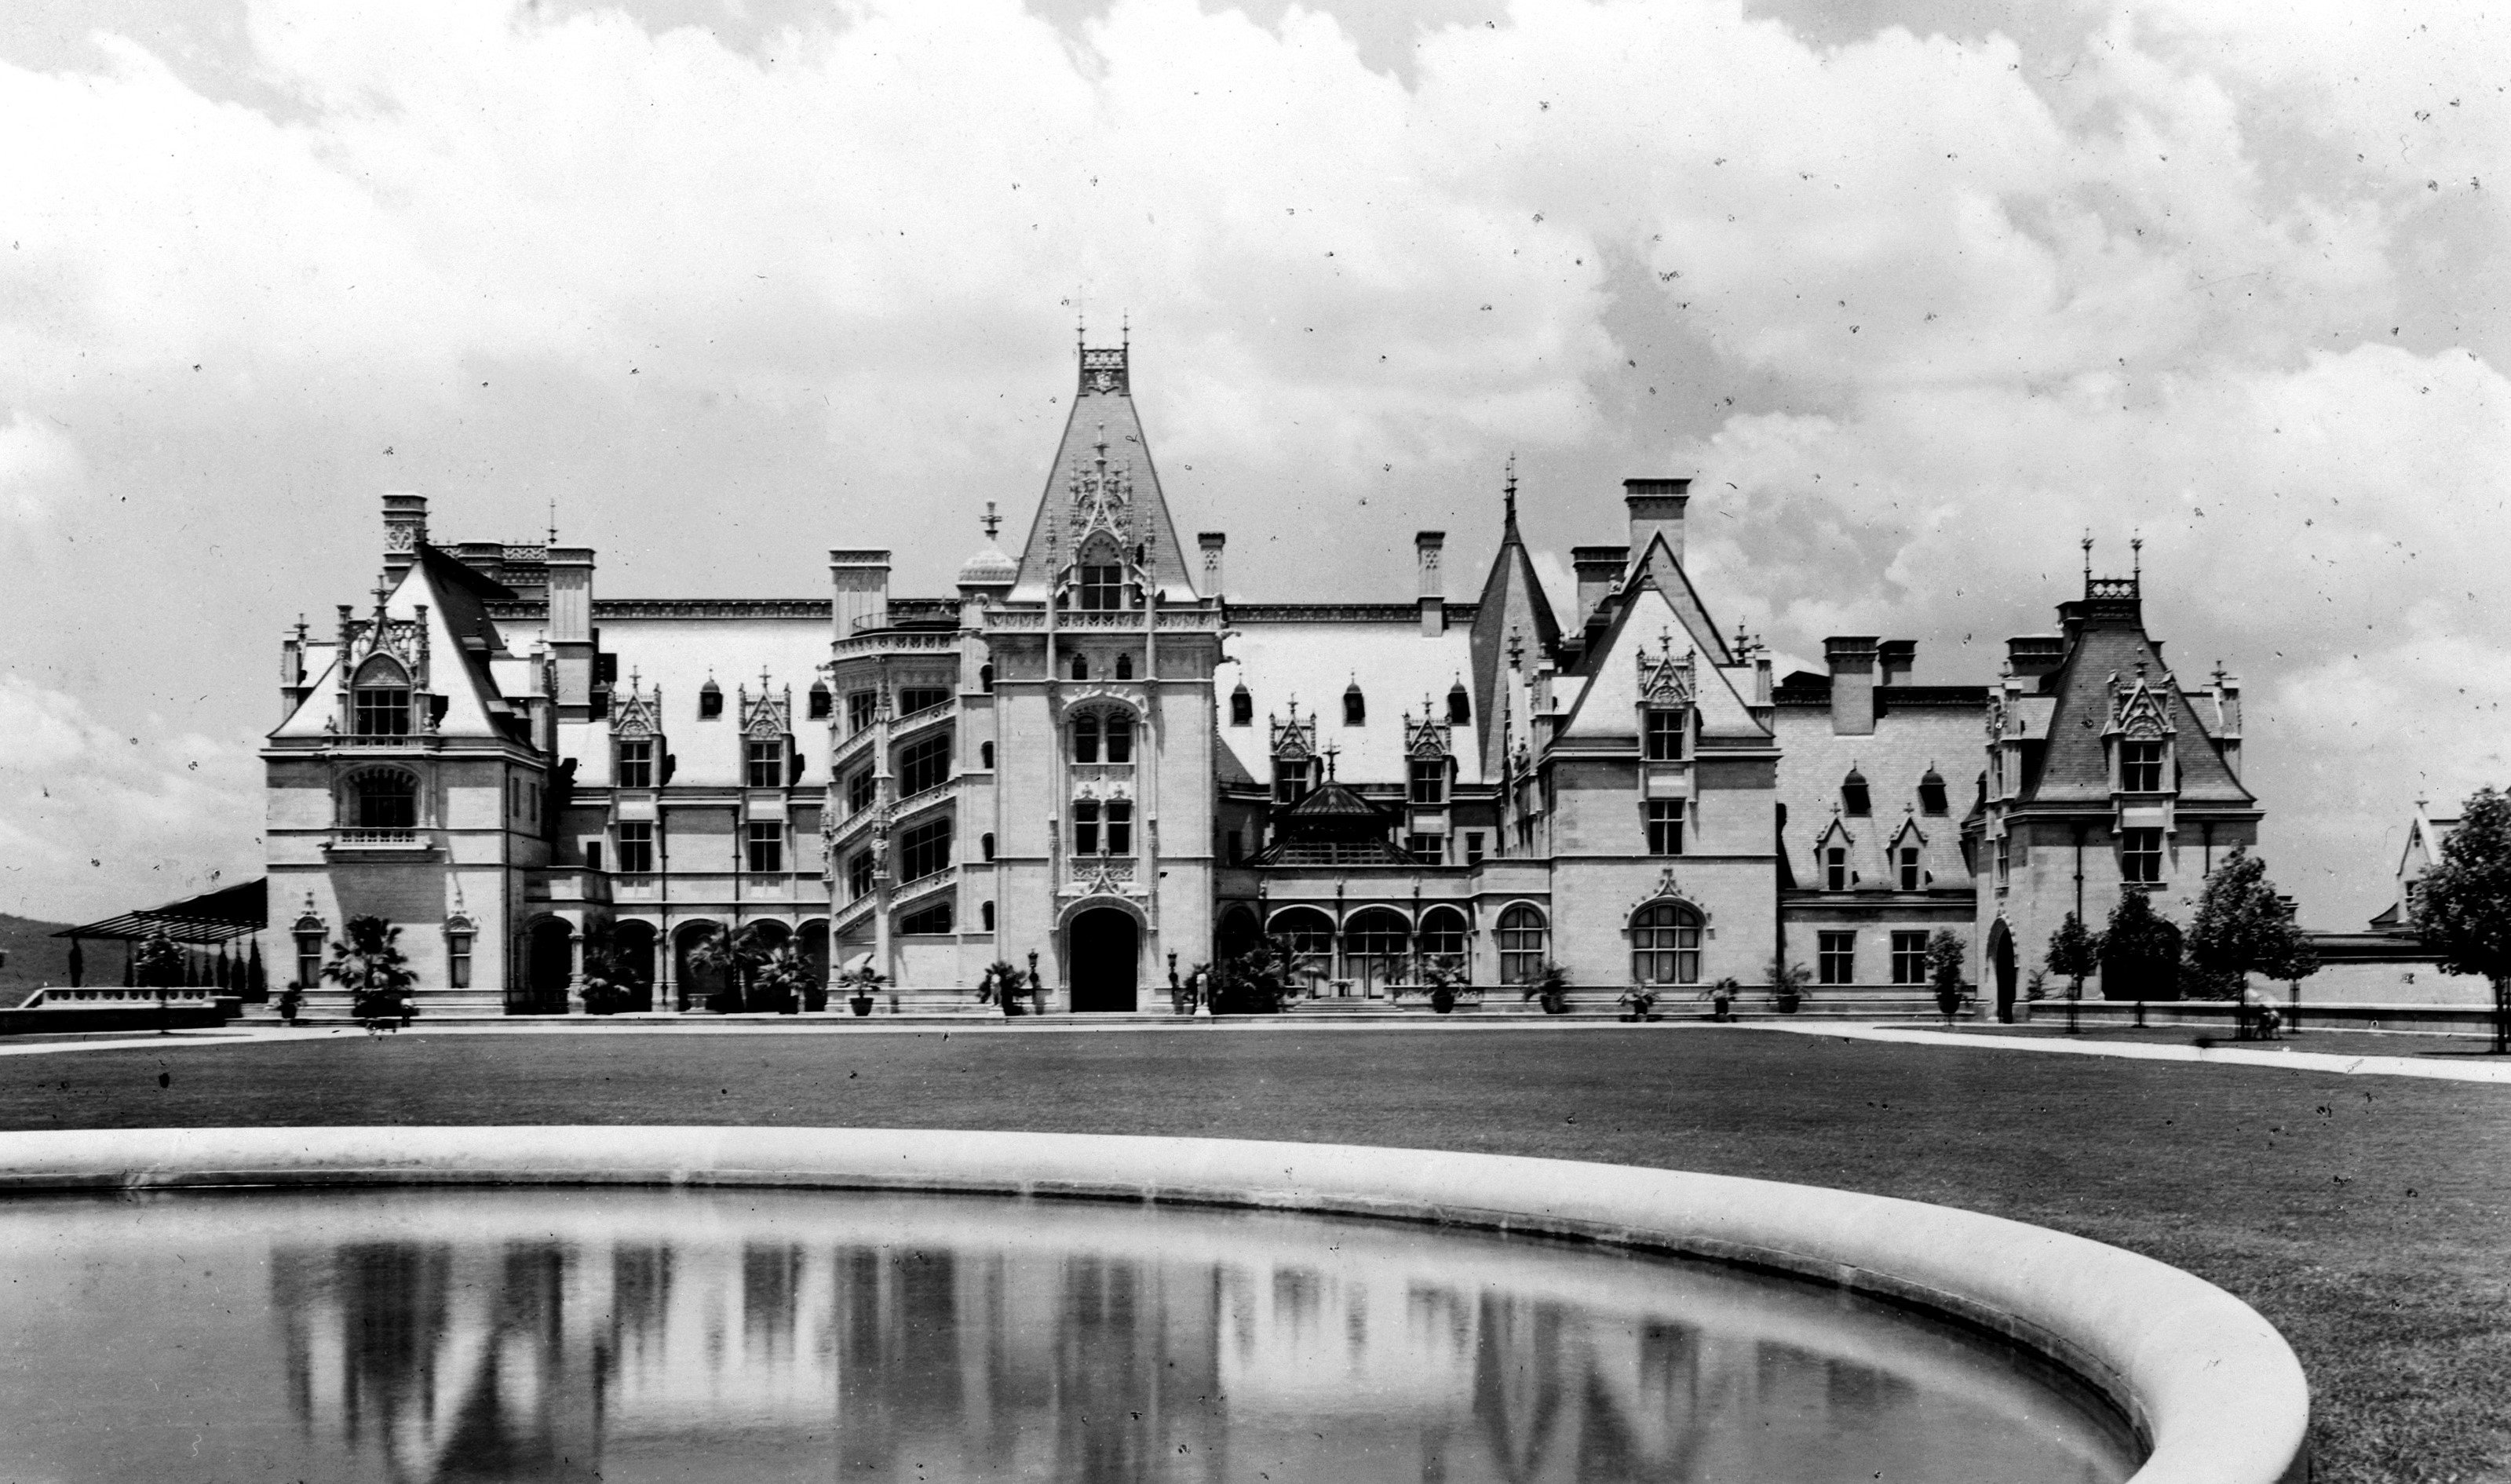 Biltmore in 1900, photograph from the Library of Congress.